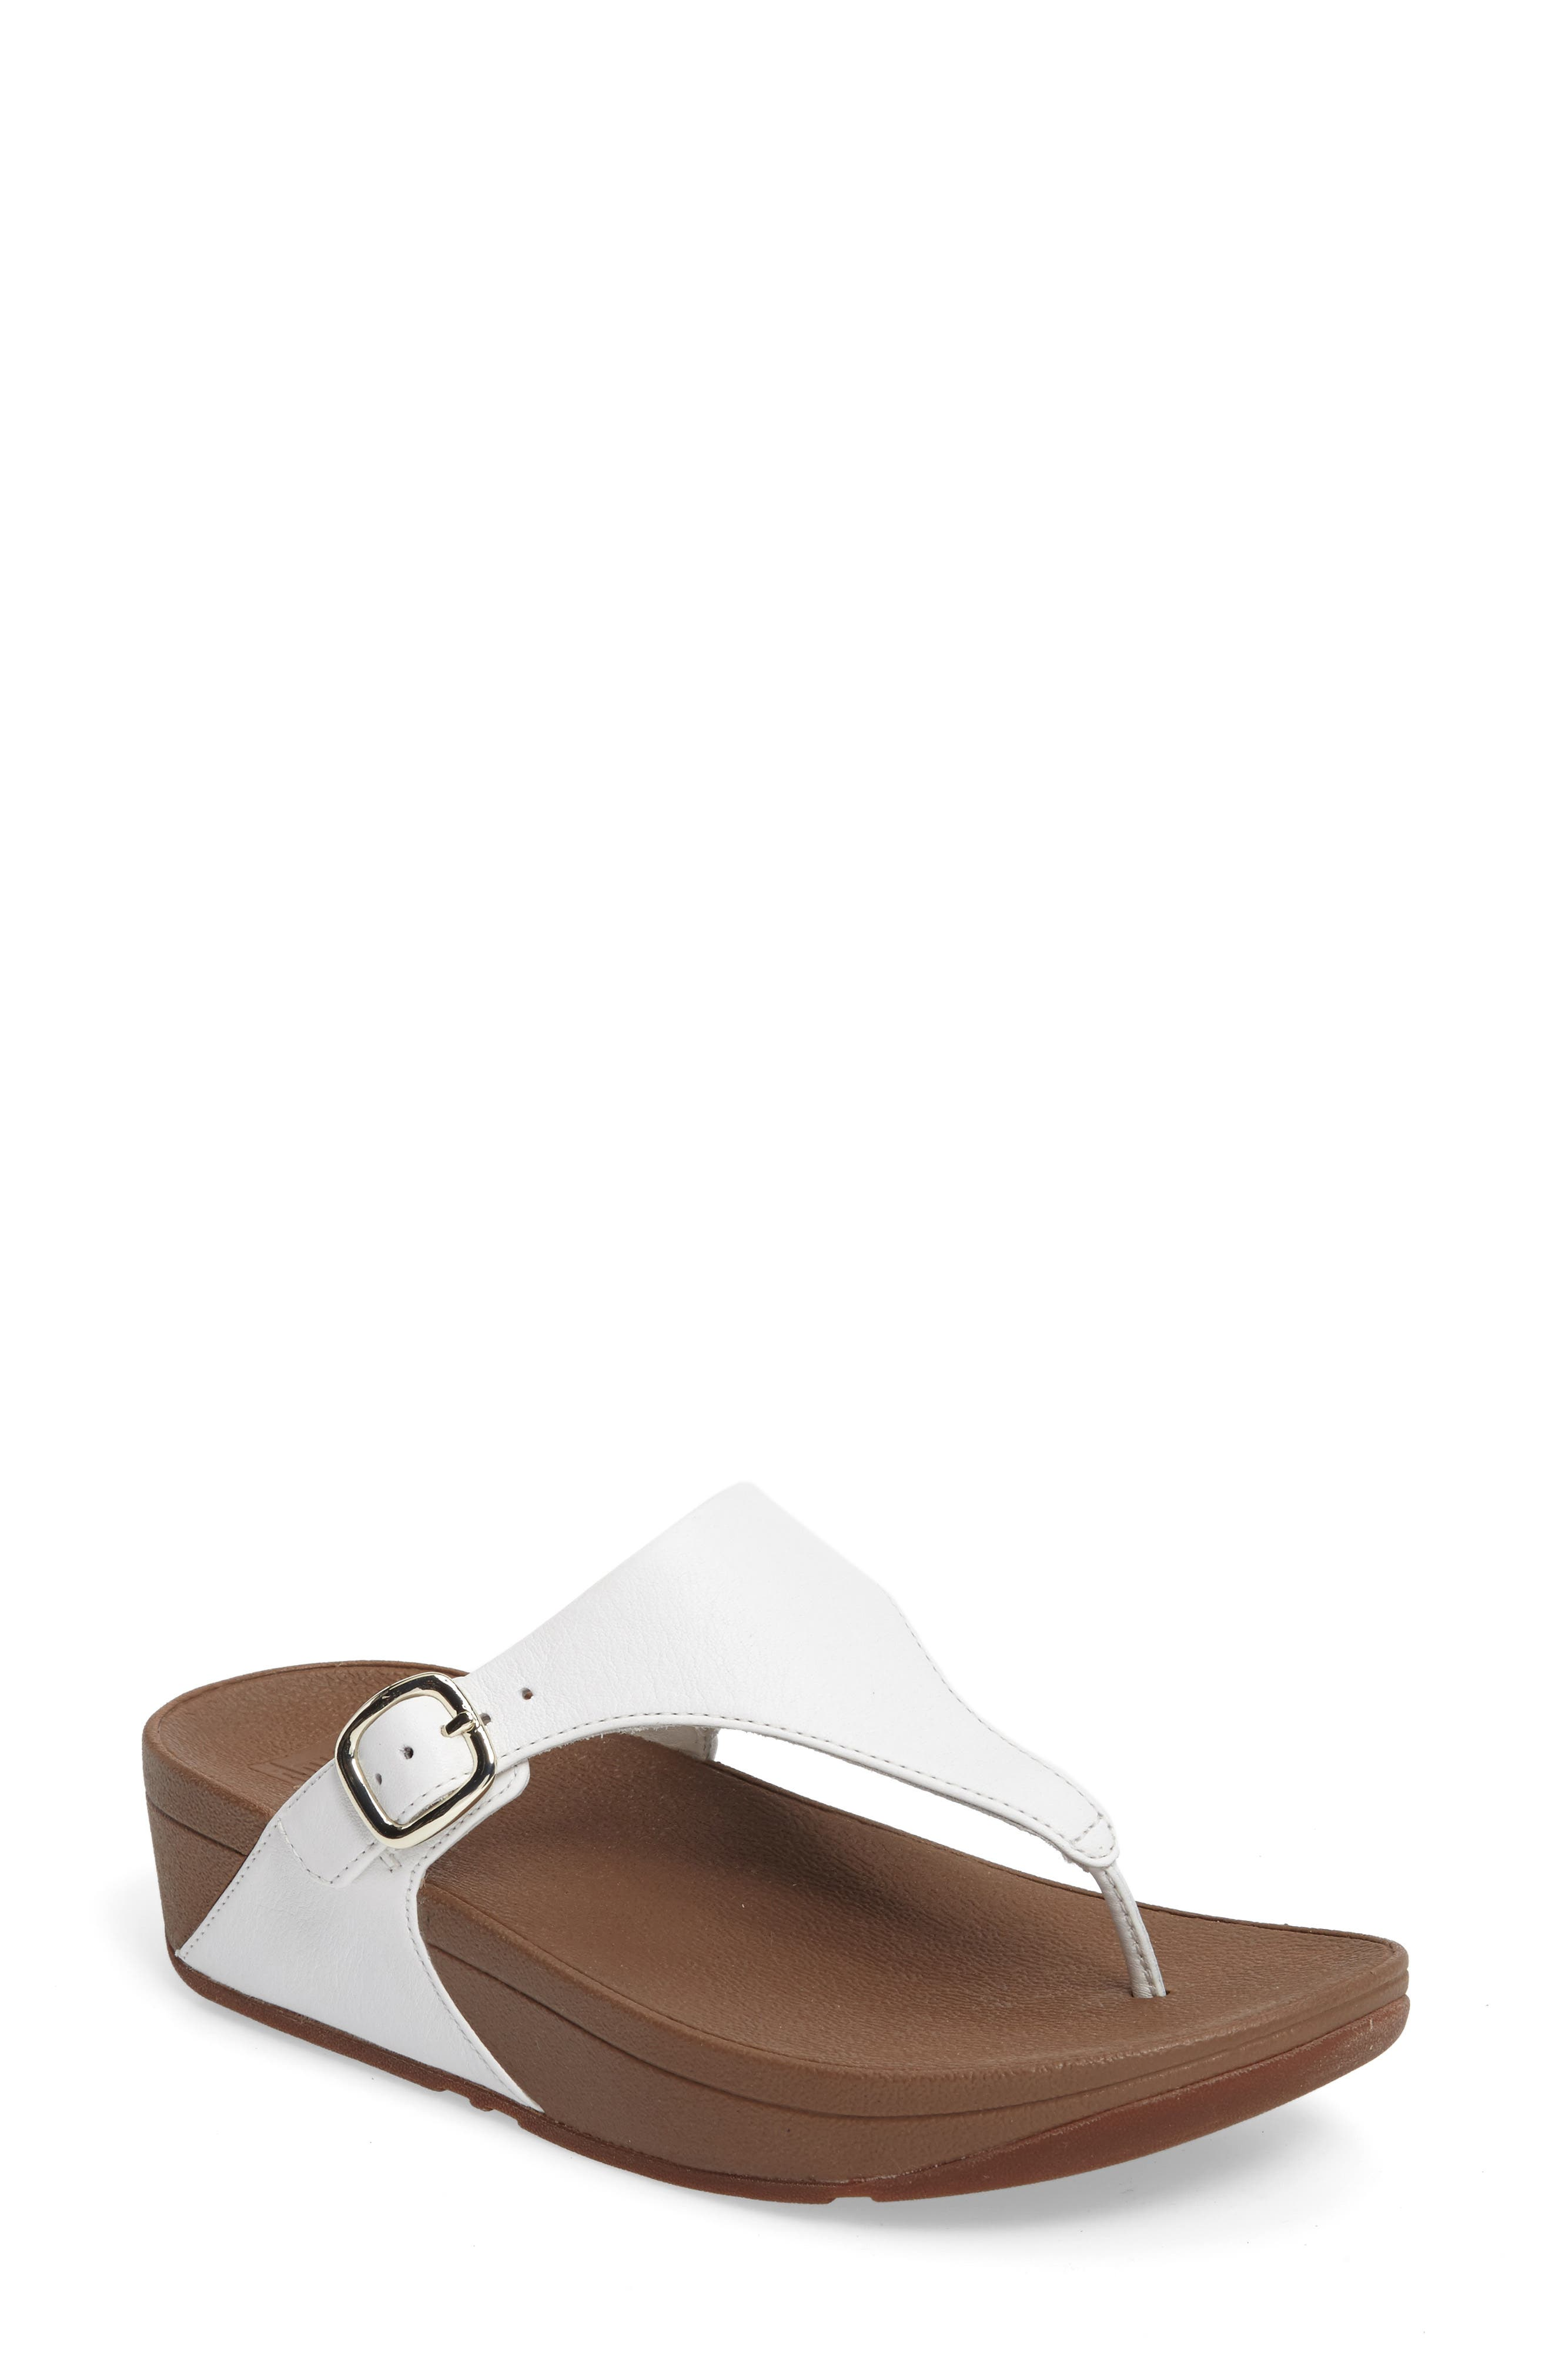 FITFLOP 'The Skinny' Flip Flop